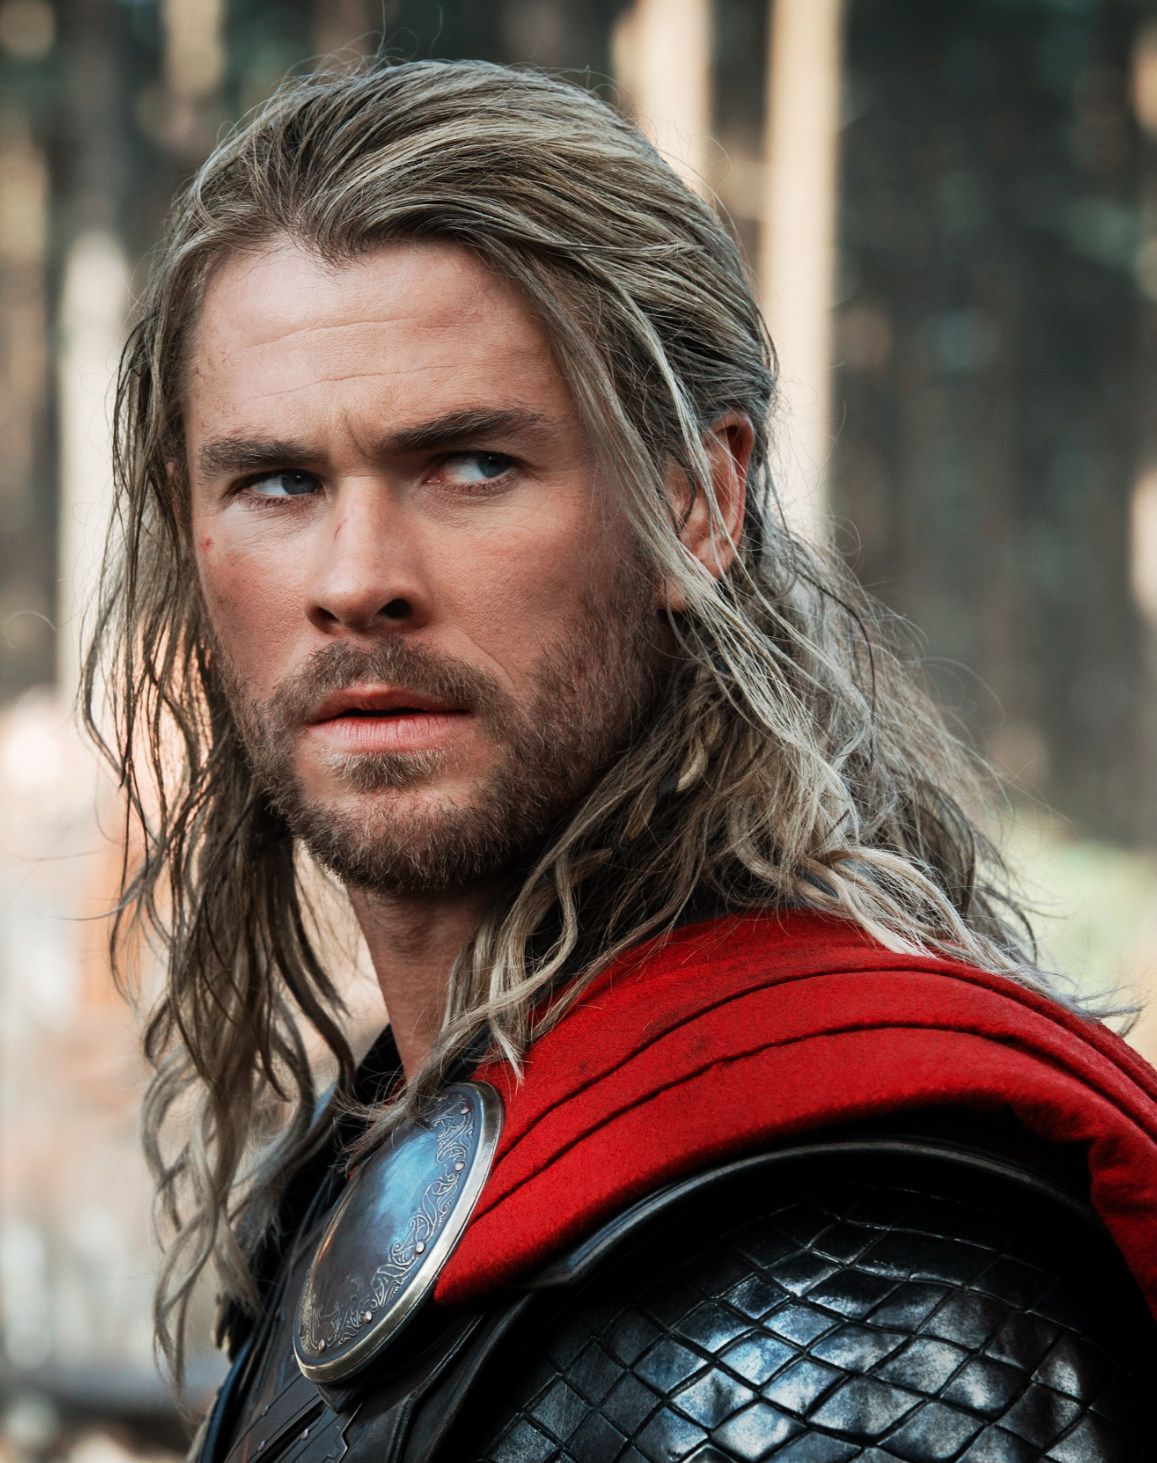 chris hemsworth, oscars presenter: 5 fast facts you need to know